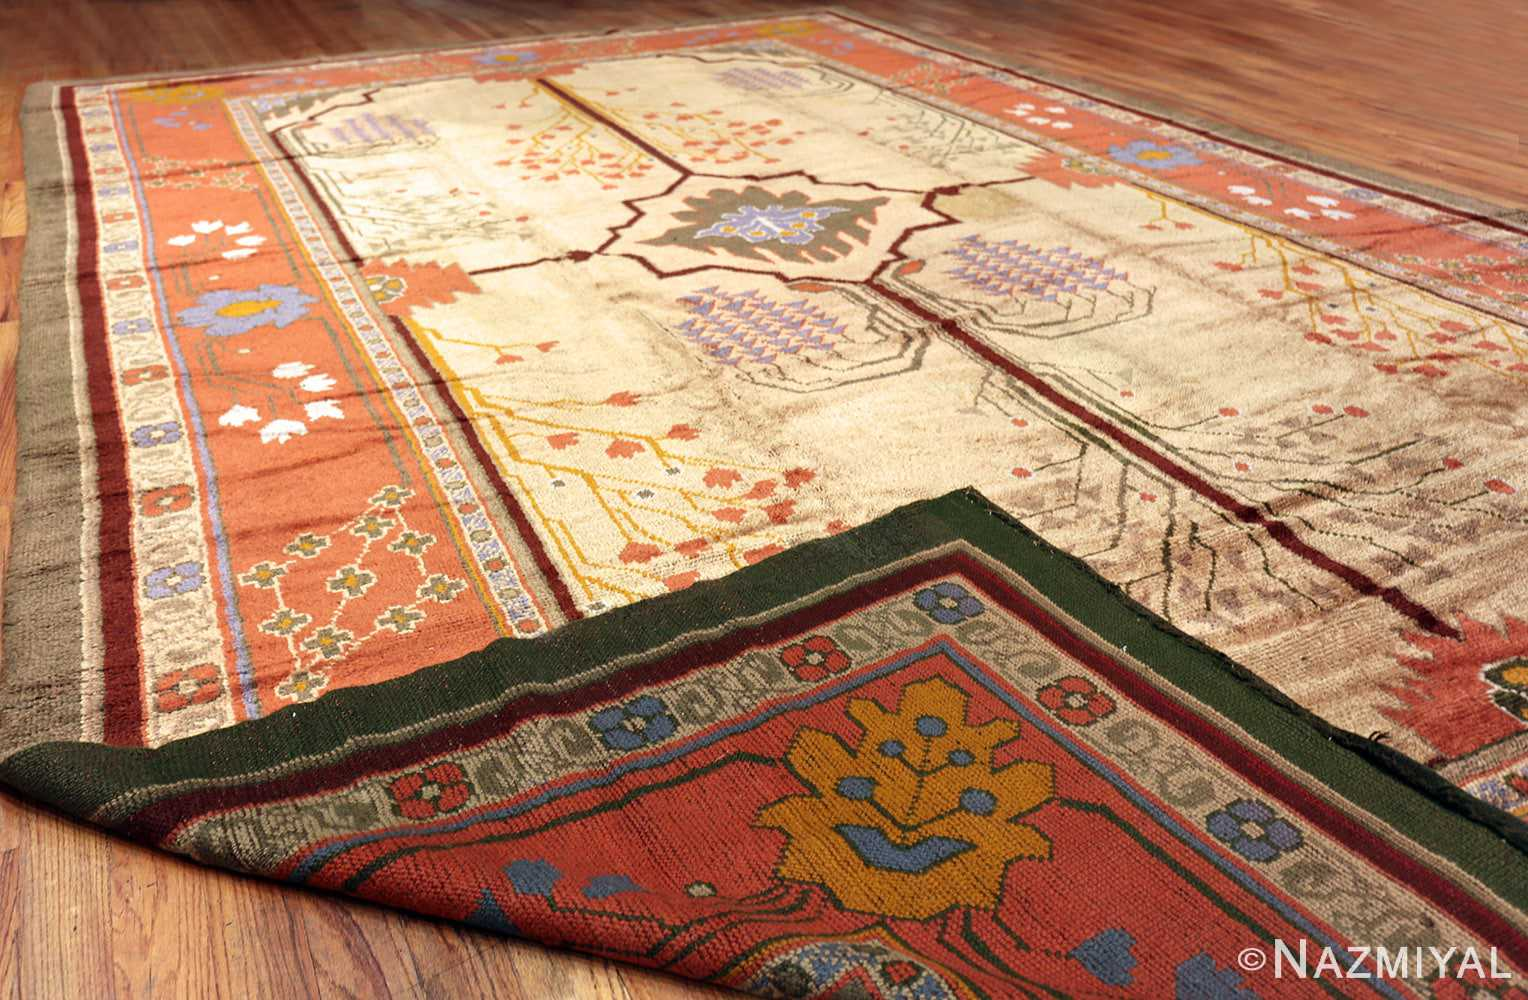 Large Antique Irish Arts and Crafts Donegal Rug #49987 by Nazmiyal